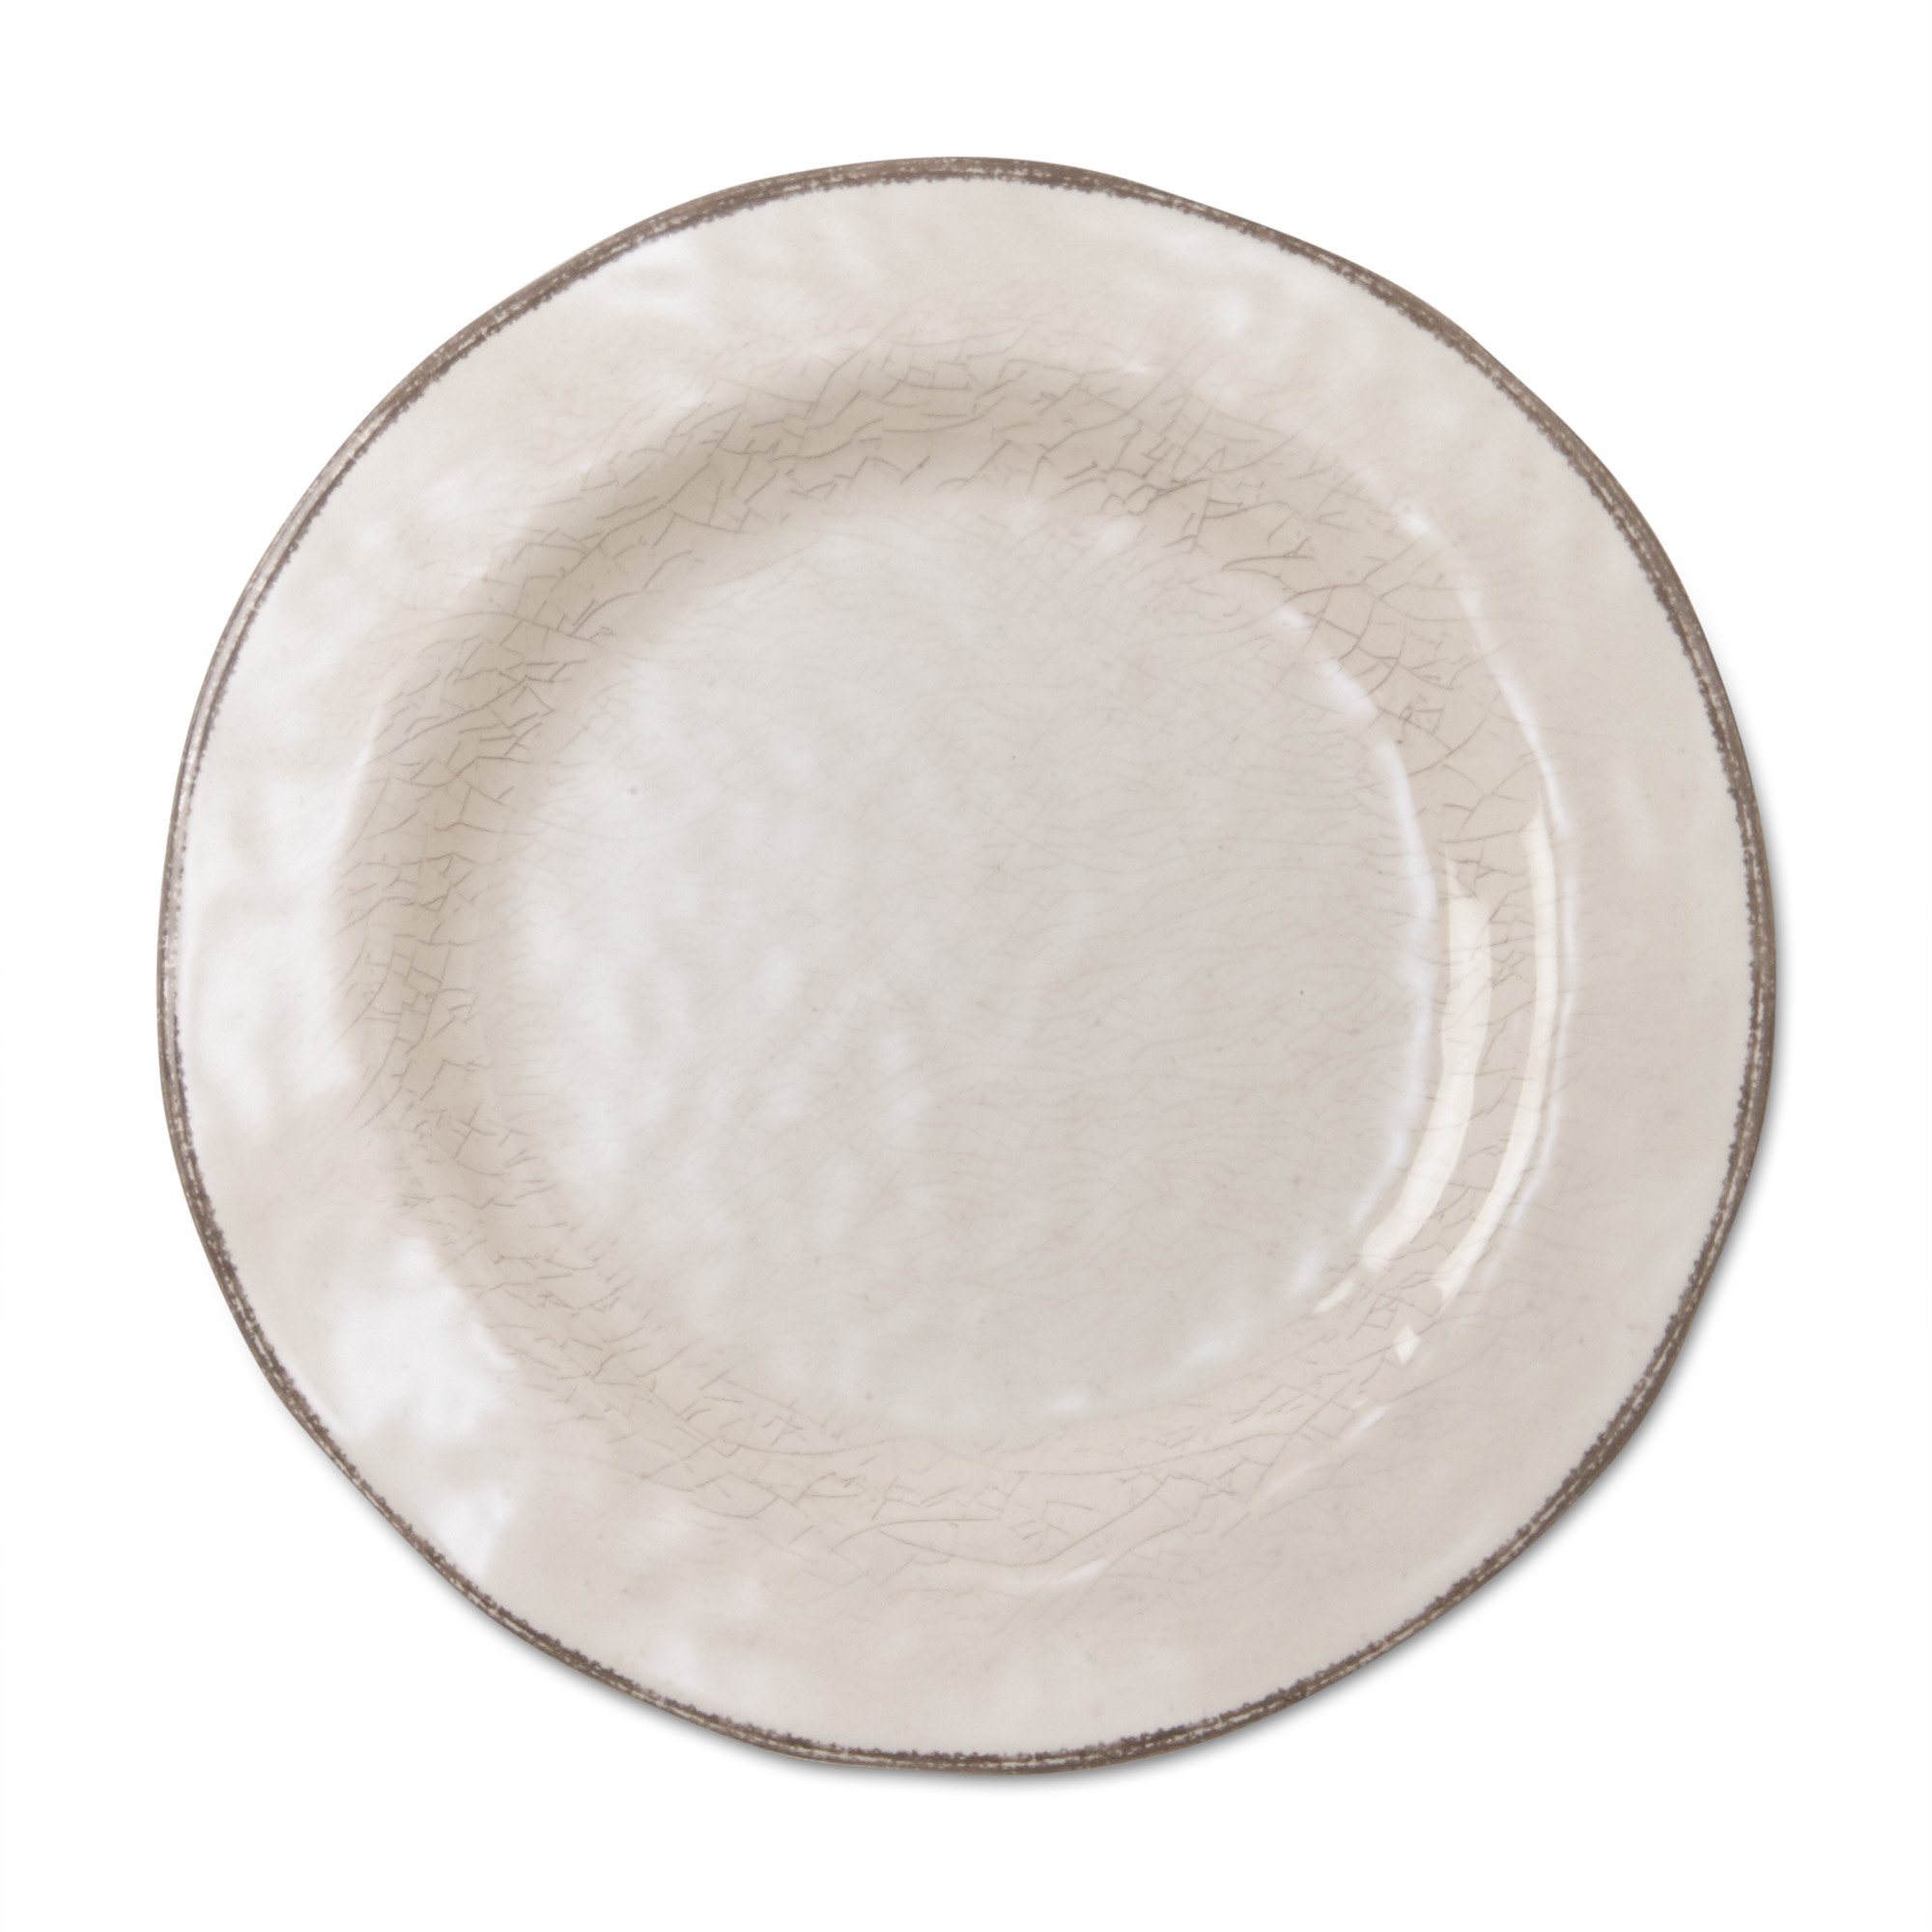 tag - Veranda Melamine Salad Plate, Durable, BPA-Free and Great for Outdoor or Casual Meals, Ivory (Set Of 4)